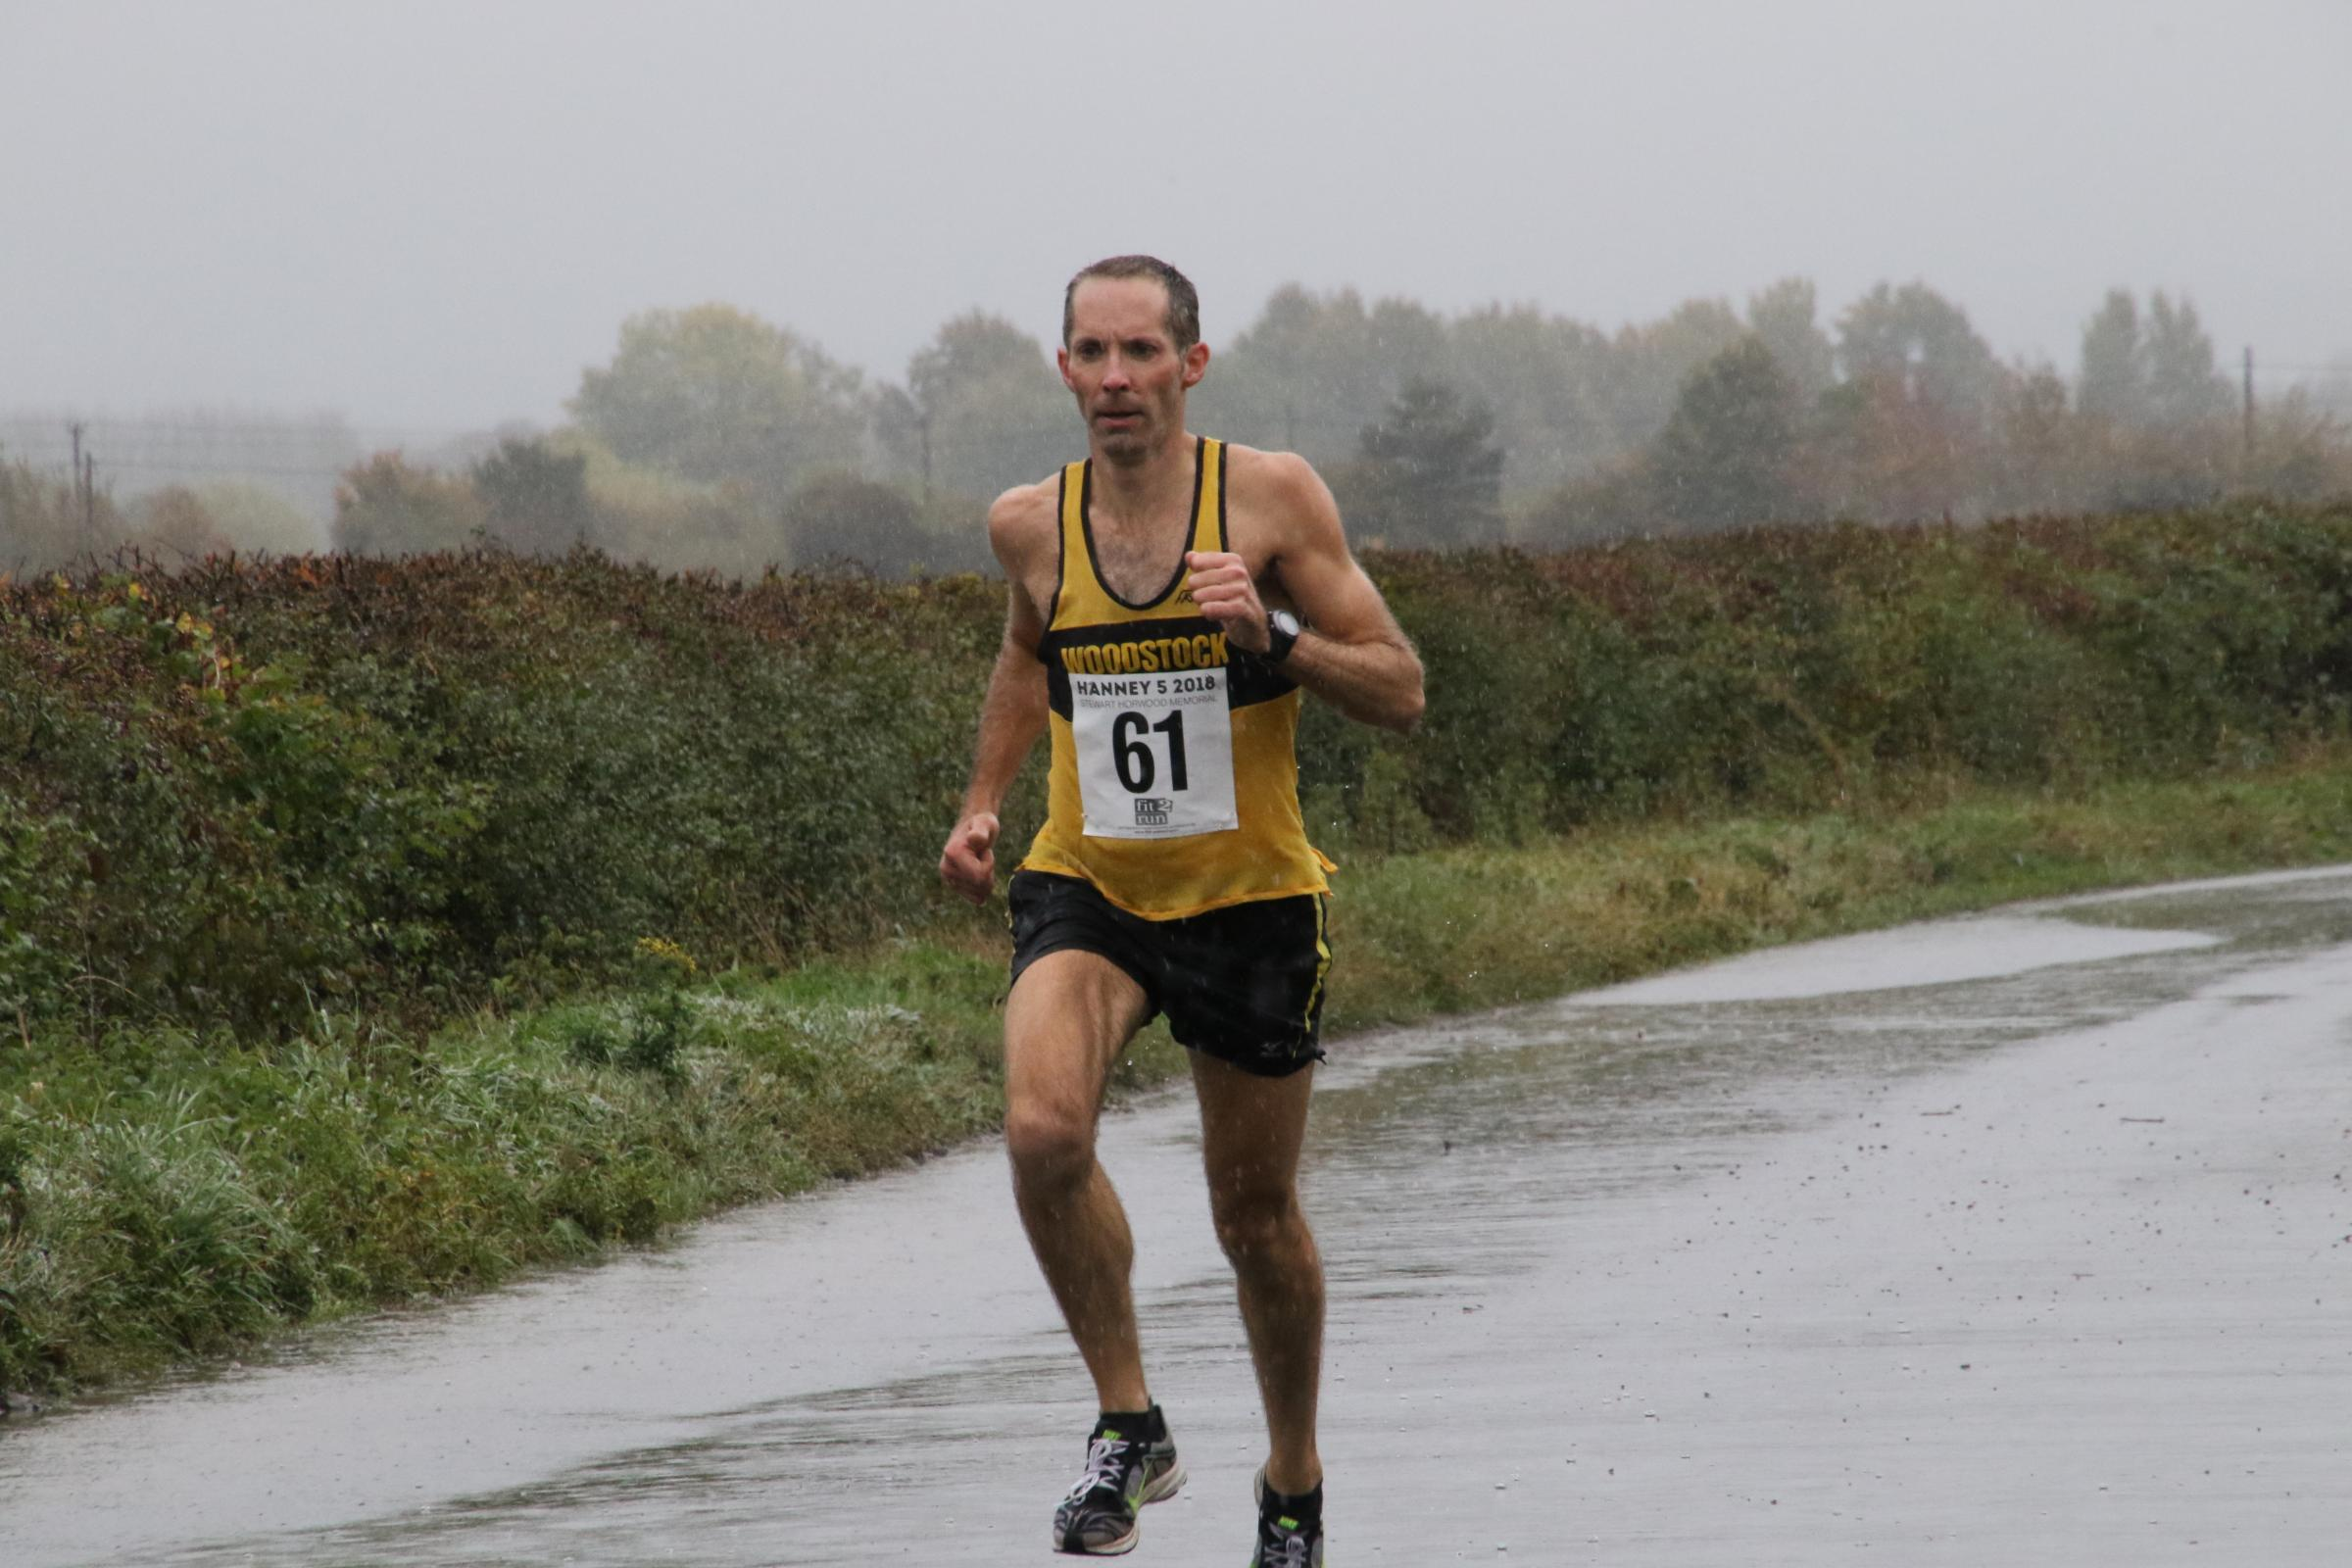 A drenched James Bolton on his way to victory at the Hanney 5 Picture: Barry Cornelius